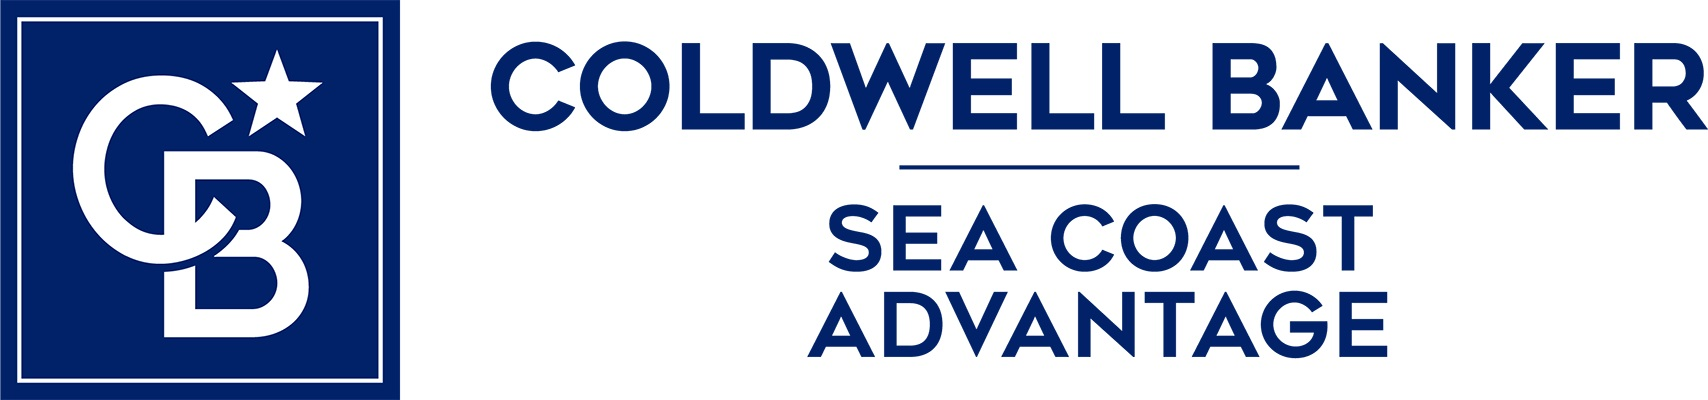 Bonnie Bittecuffer - Coldwell Banker Sea Coast Advantage Realty